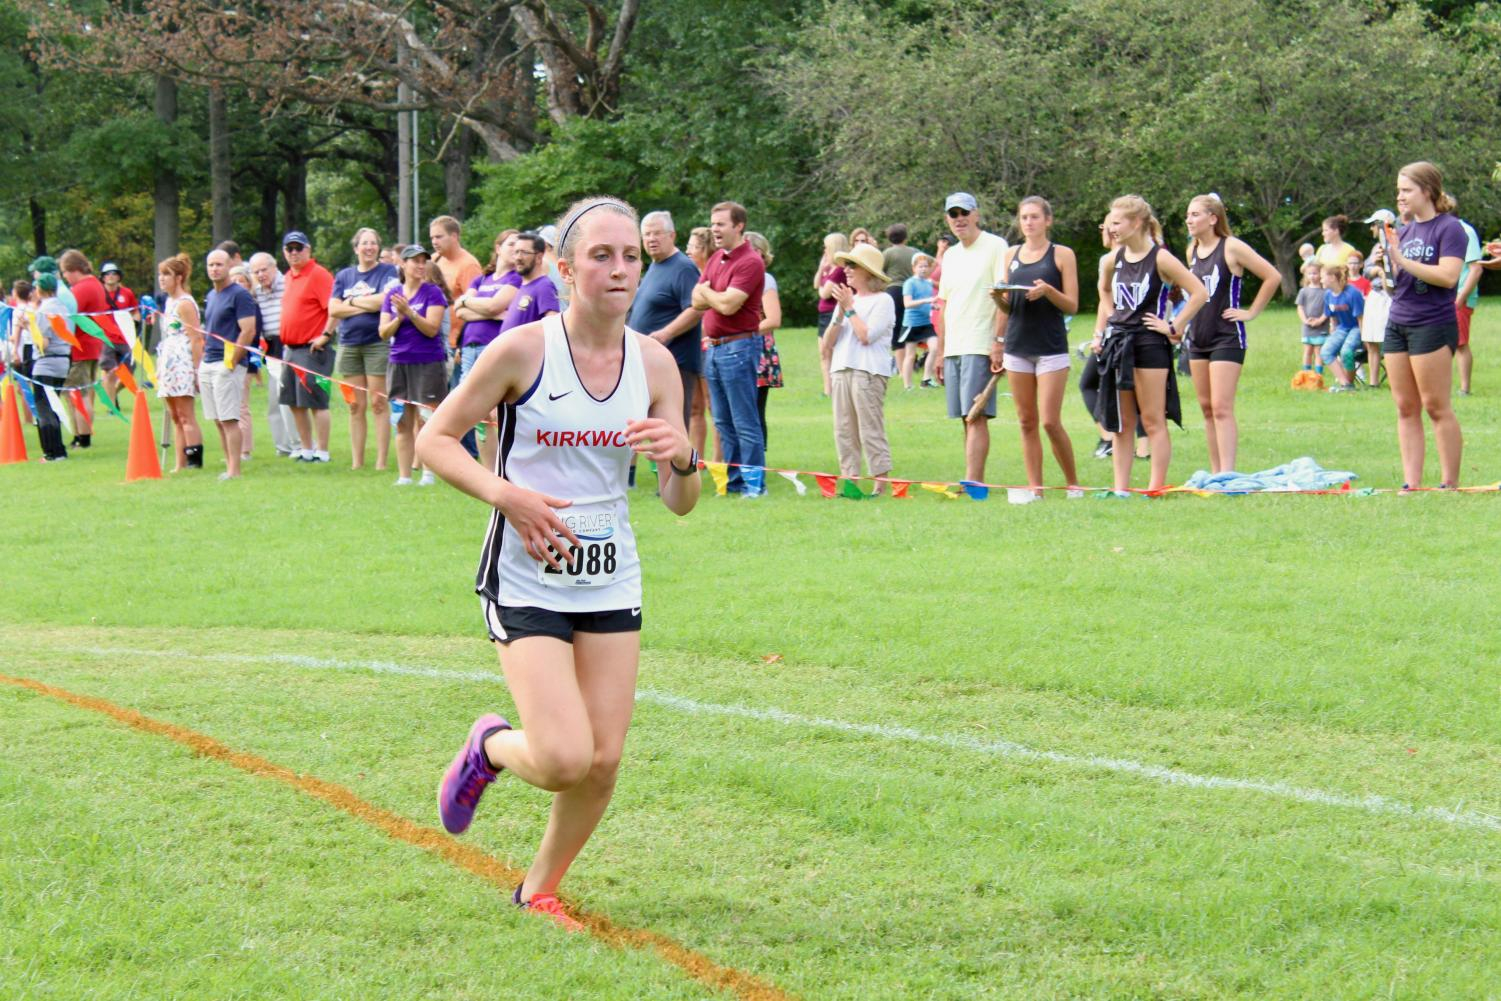 Maggie+Klein%2C+freshman%2C+finishes+first+for+Kirkwood+with+a+time+of+12%3A45+for+her+3k.